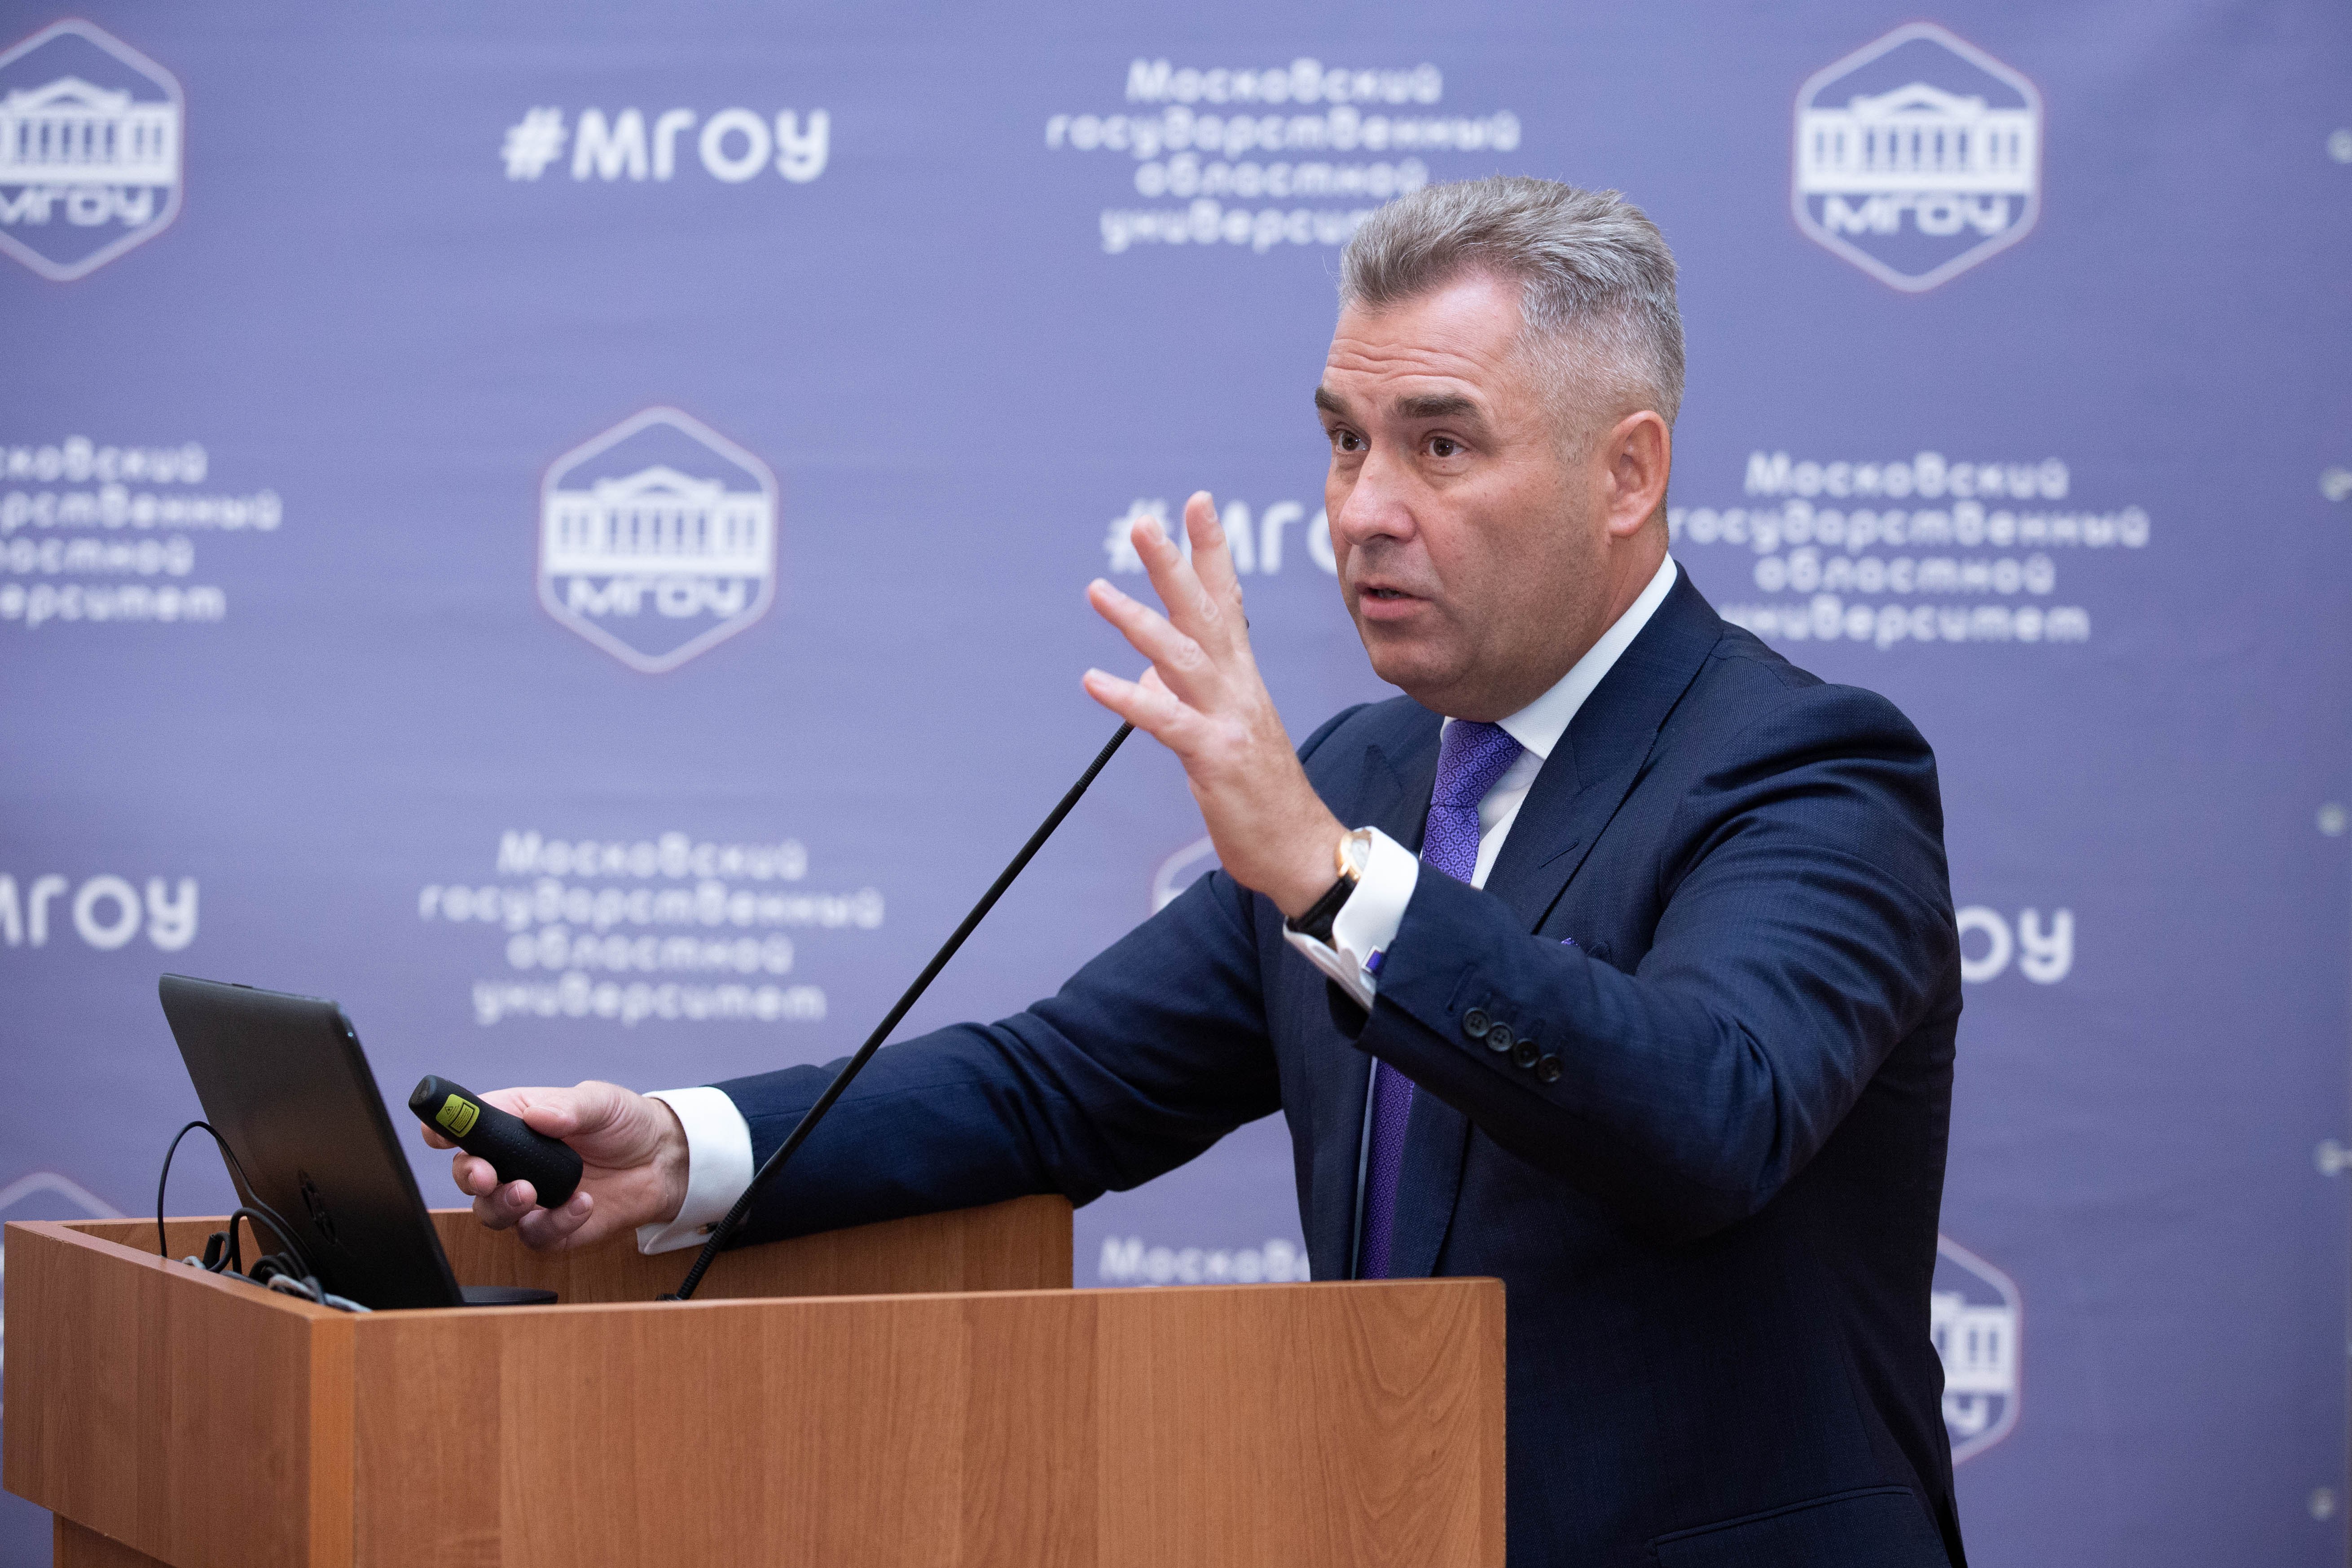 SCIENTIFIC SEMINAR OF LAWYER PAVEL ASTAKHOV WAS HELD IN MOSCOW STATE UNIVERSITY